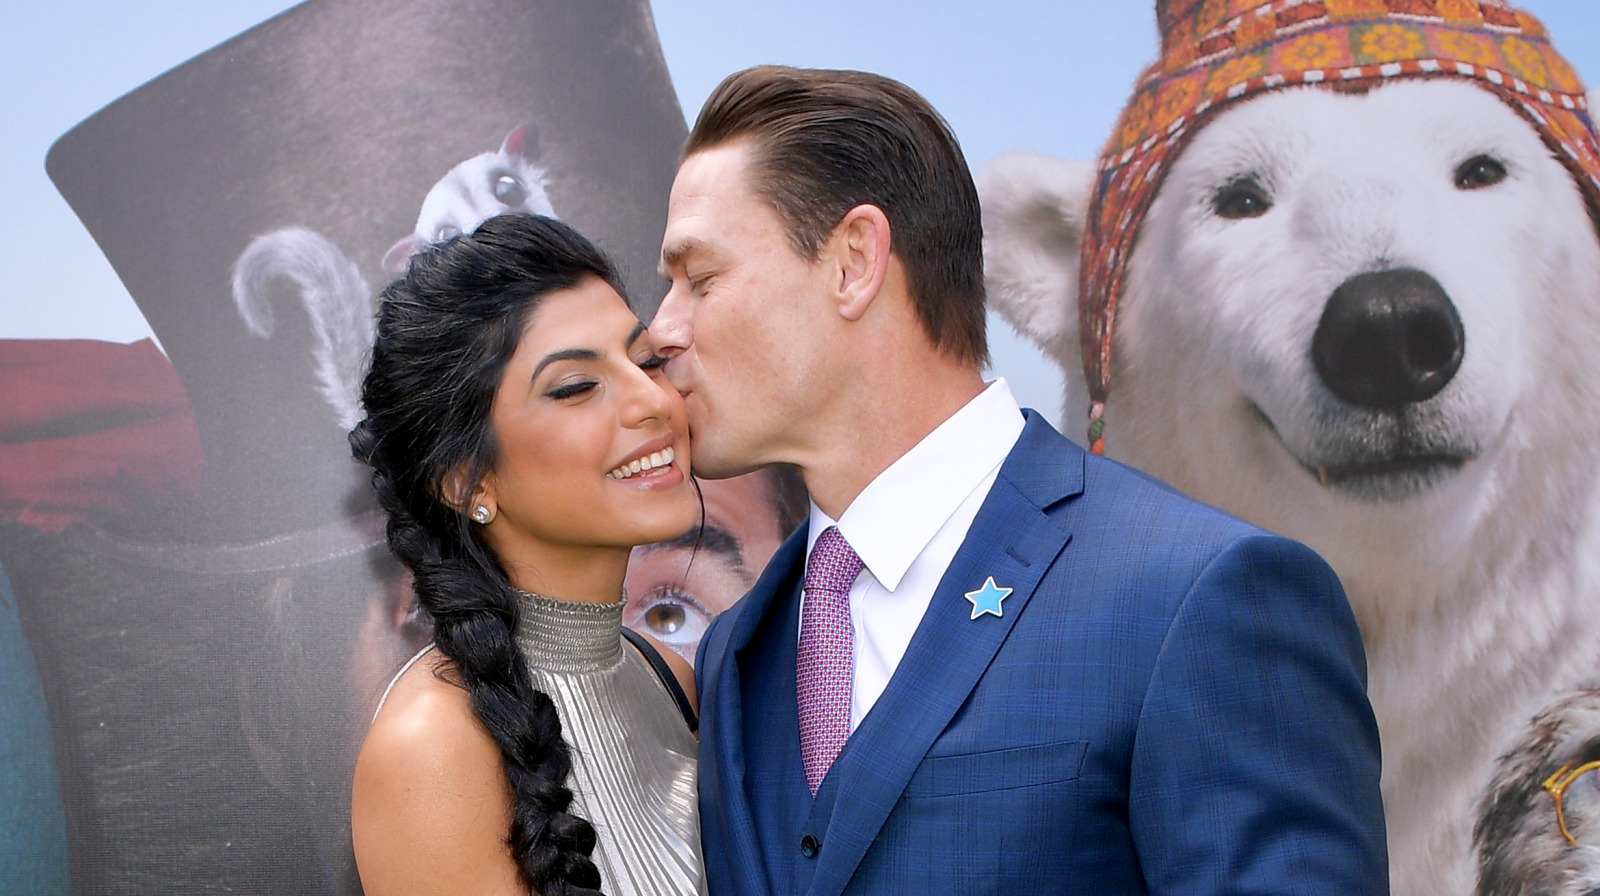 The Truth About John Cena S Wife John cena is a popular american professional wrestler. the truth about john cena s wife